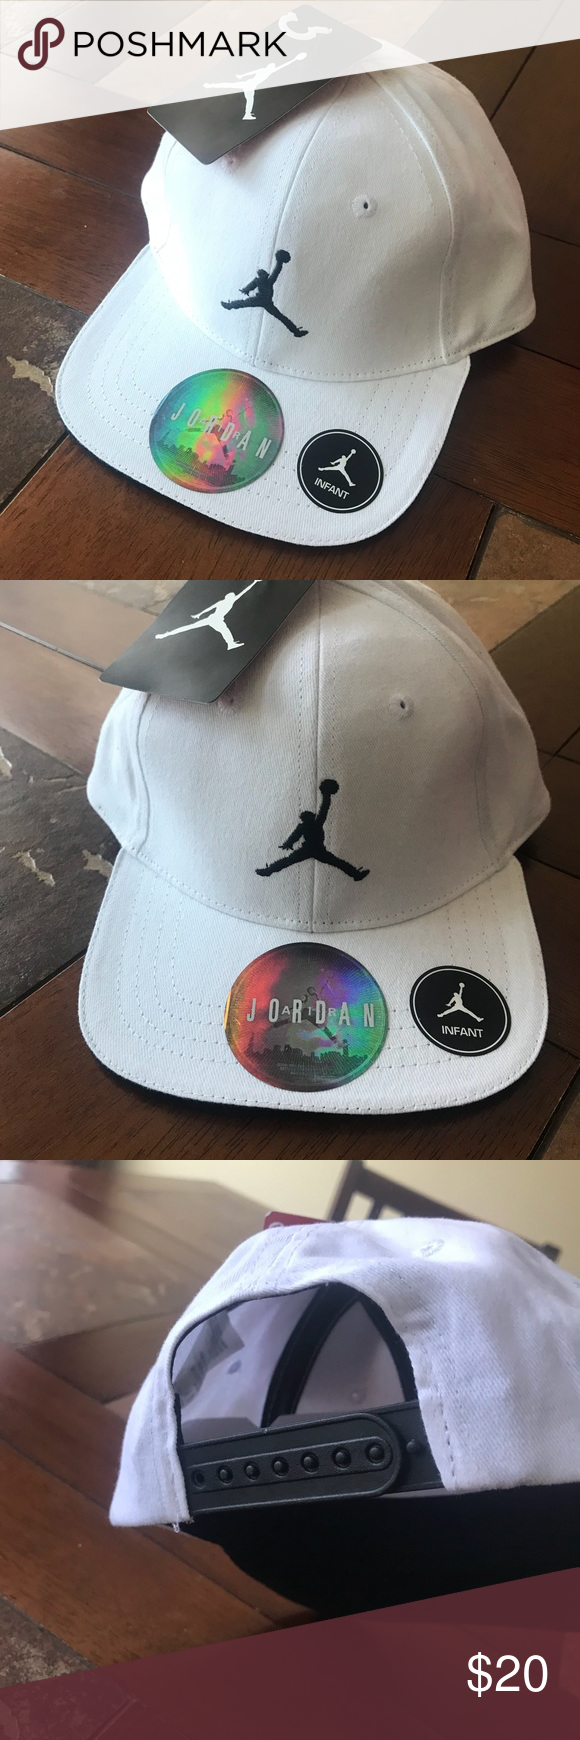 Baby Jordan hat 🧢 All white with black details - adjustable snap back  Jordan Accessories Hats c6a5cc8eeaf